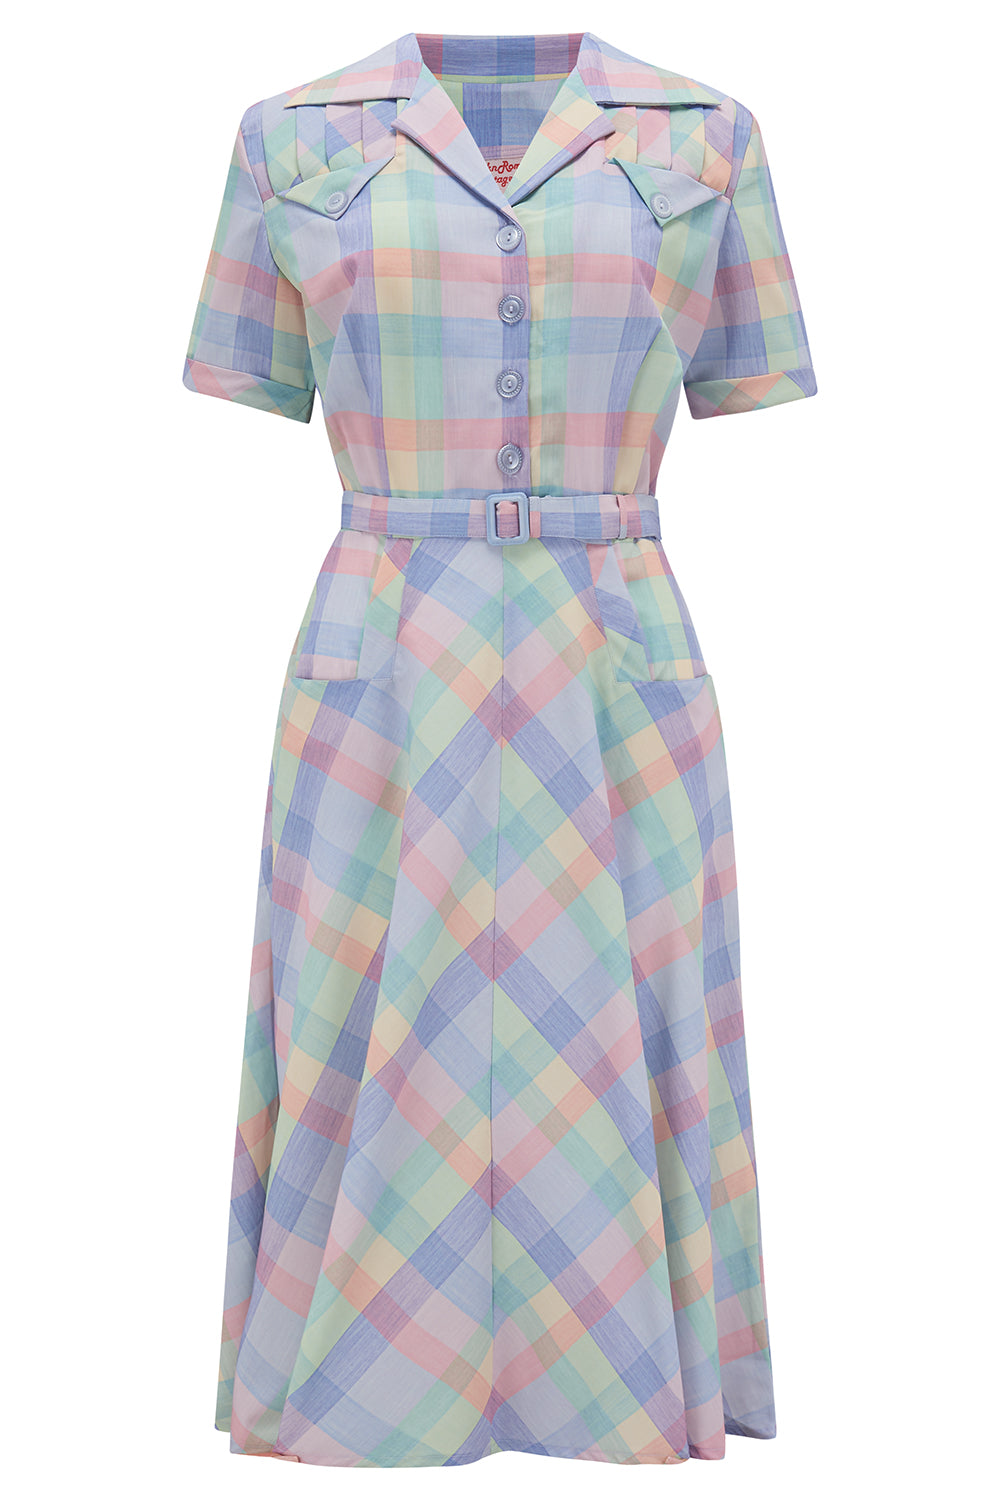 1950s Style Clothing & Fashion The Polly Dress in Summer Check Print True  Authentic 1950s Vintage Style £49.00 AT vintagedancer.com